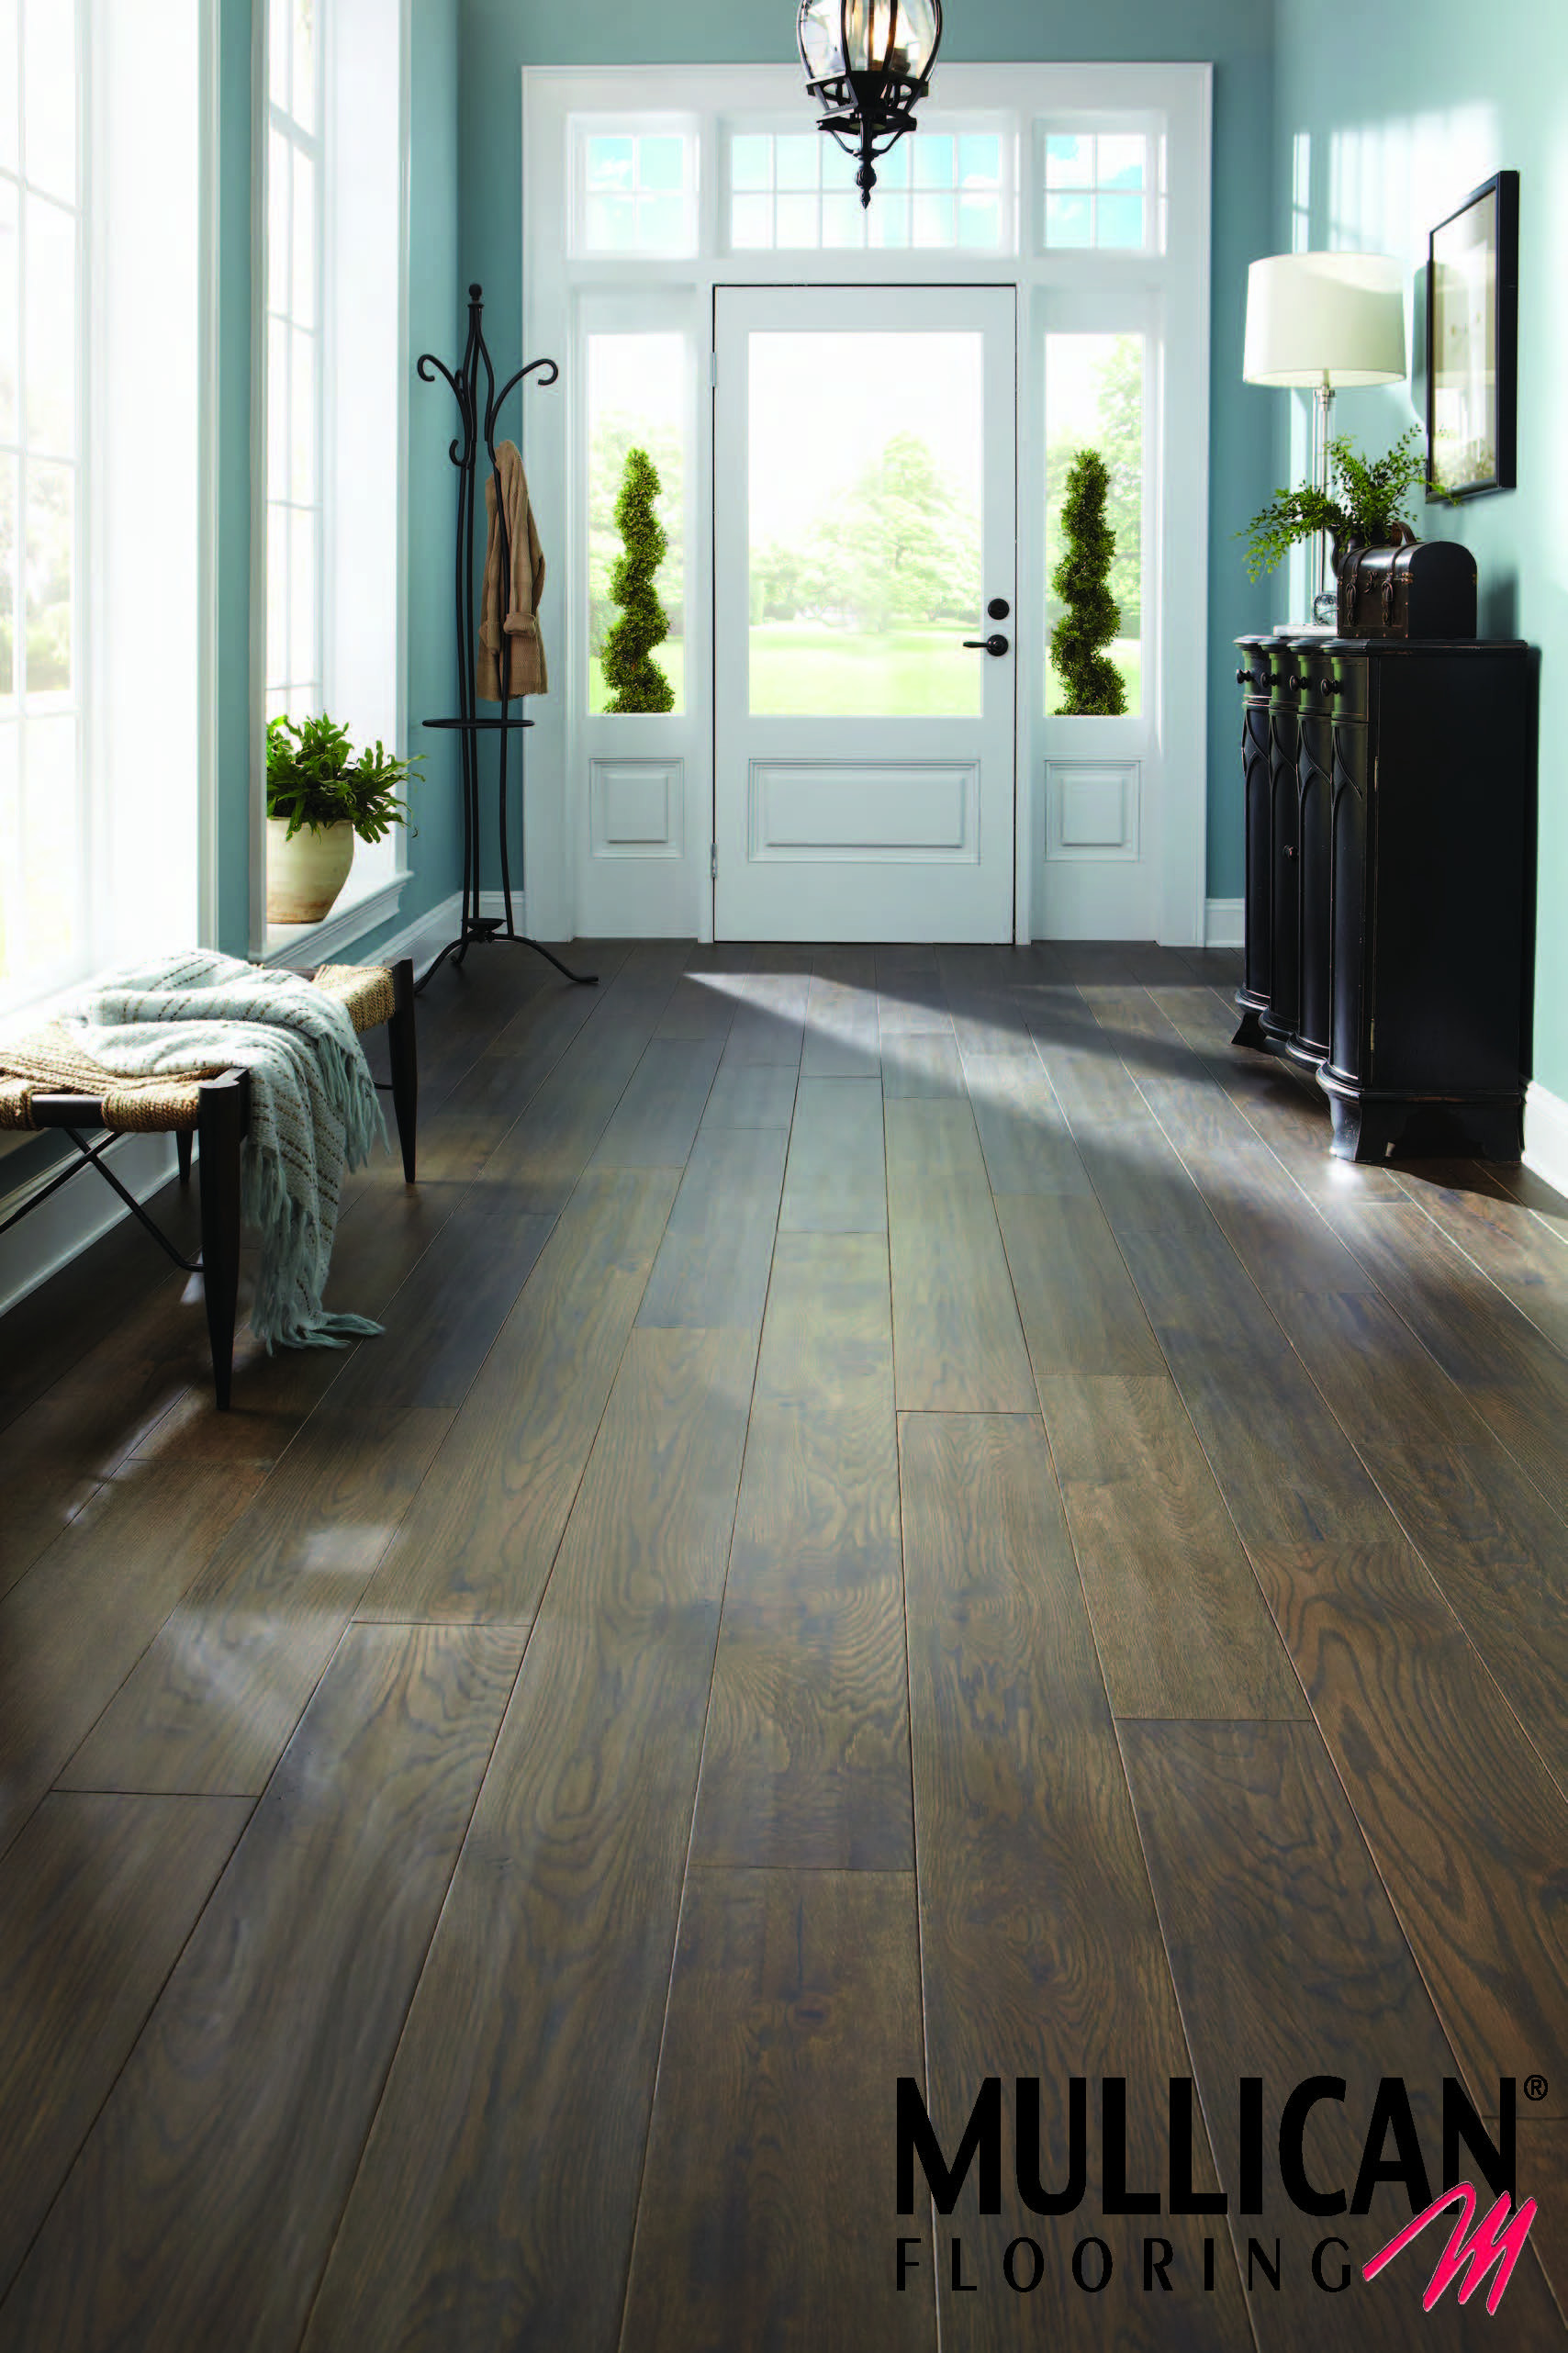 hardwood flooring distributors of were authorized distributors of mullican wood floors this is a within were authorized distributors of mullican wood floors this is a castillian engineered oak